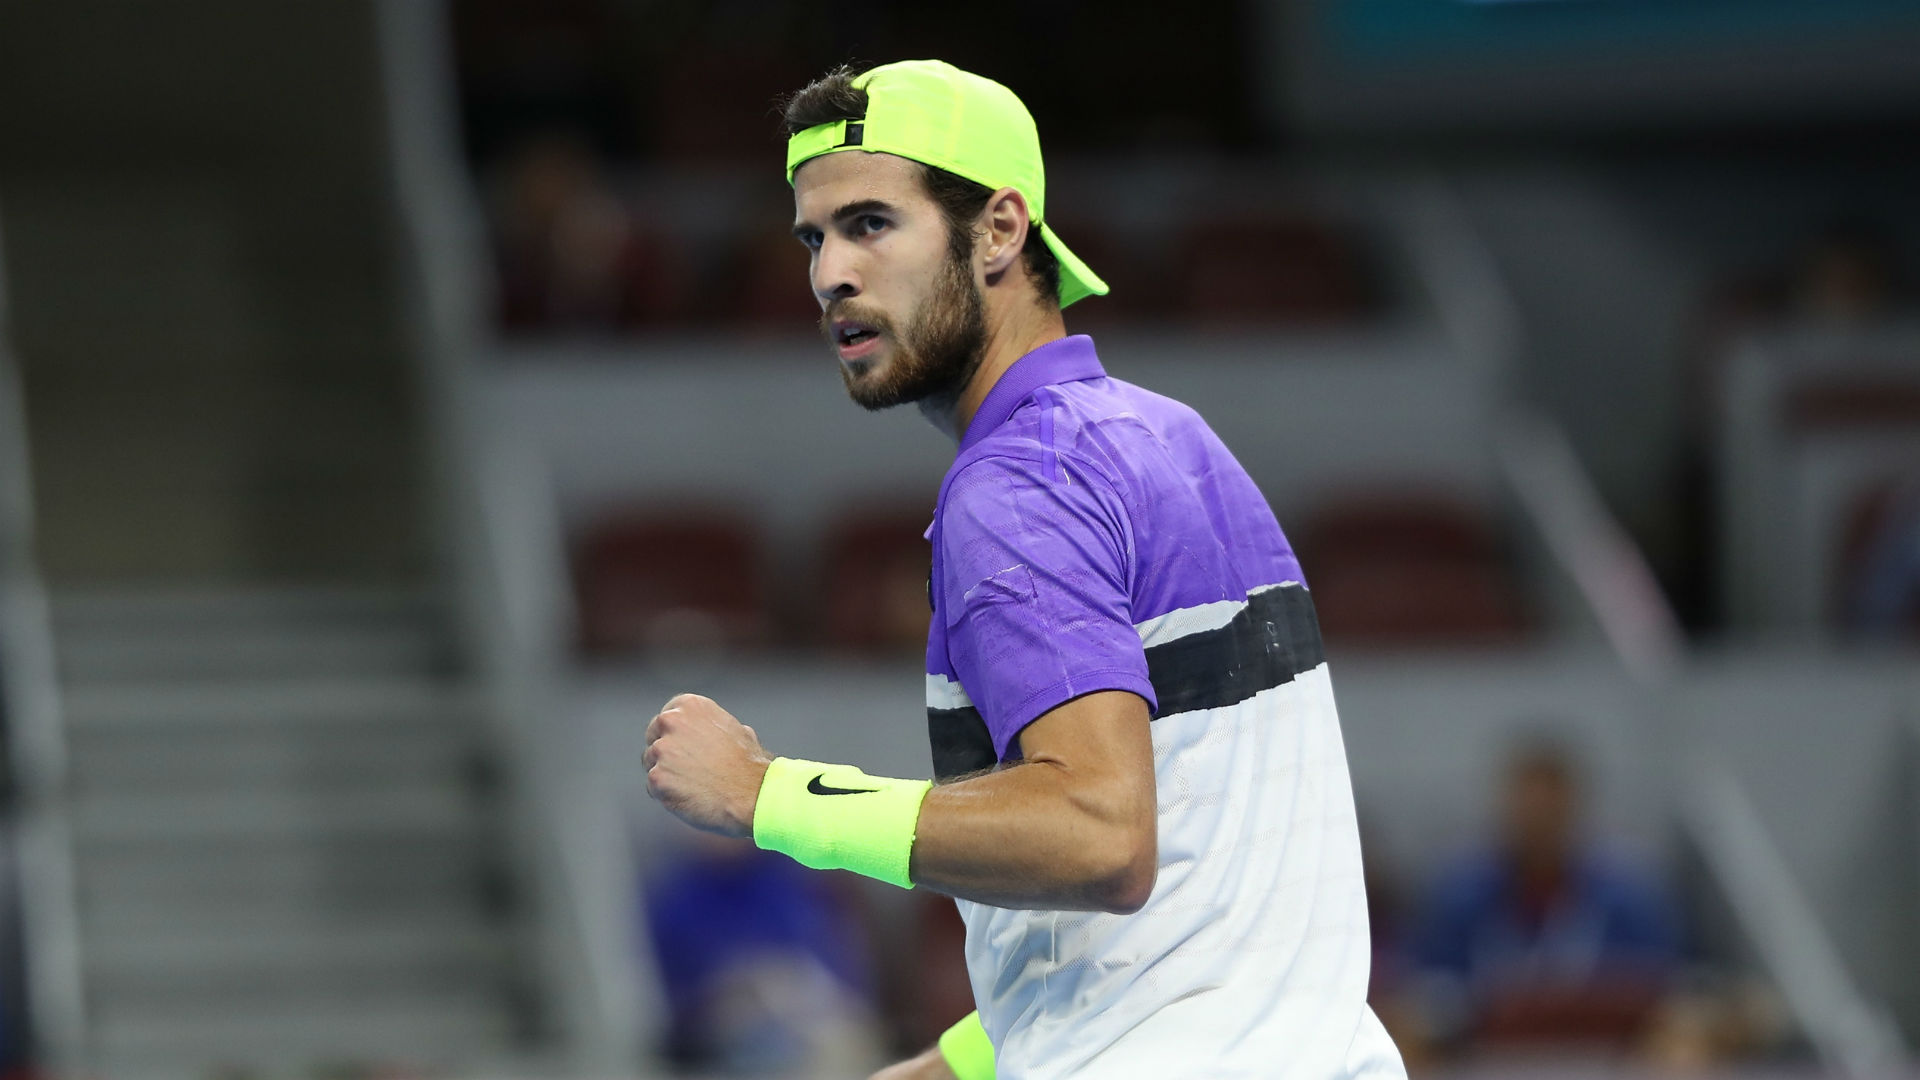 Khachanov flys the flag in Moscow after Medvedev withdrawal